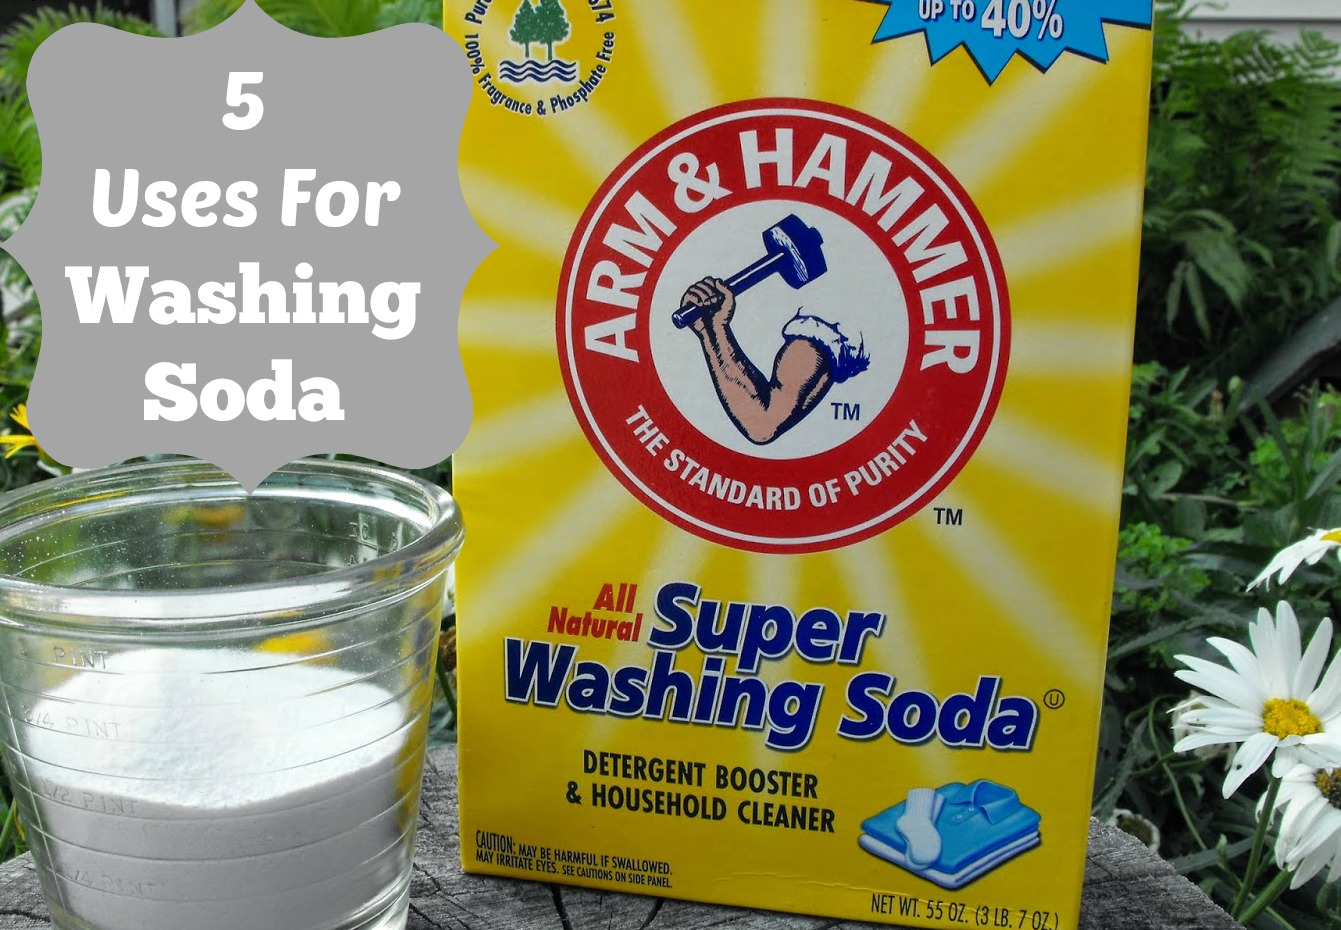 5 uses for washing soda